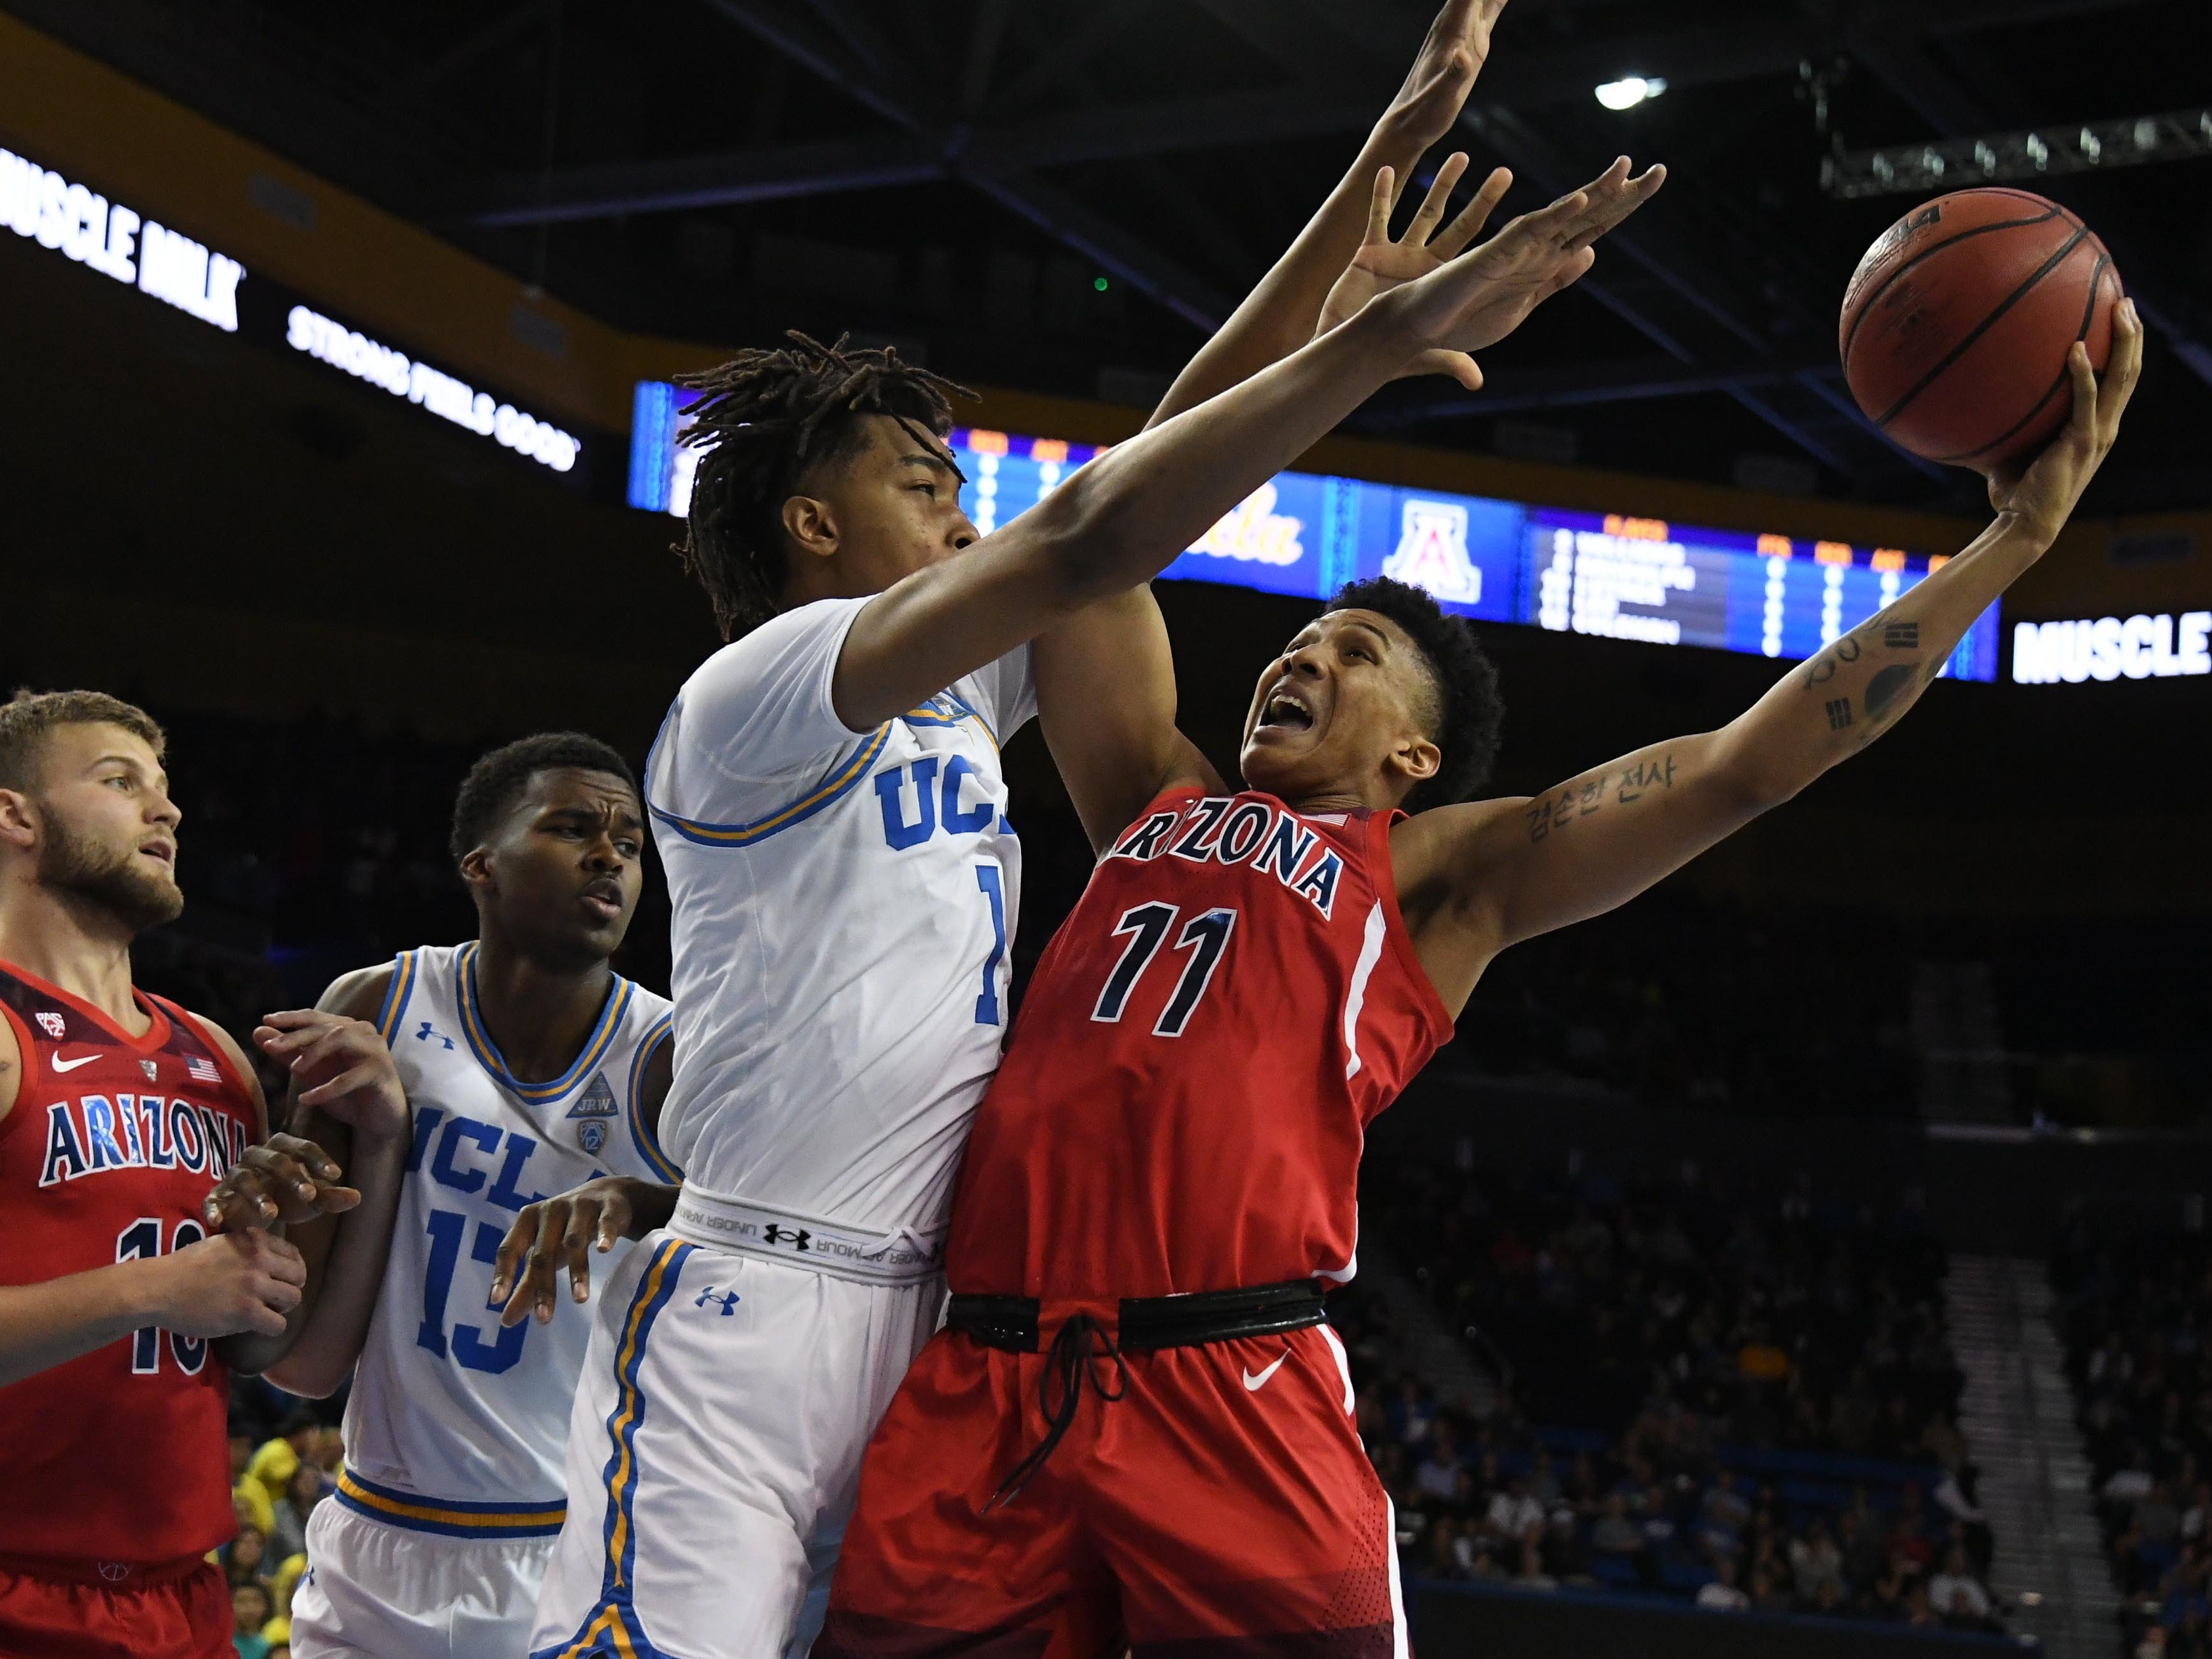 Jan 26, 2019; Los Angeles, CA, USA; Arizona Wildcats forward Ira Lee (11) shoots against UCLA Bruins center Moses Brown (1) in the first half at Pauley Pavilion.